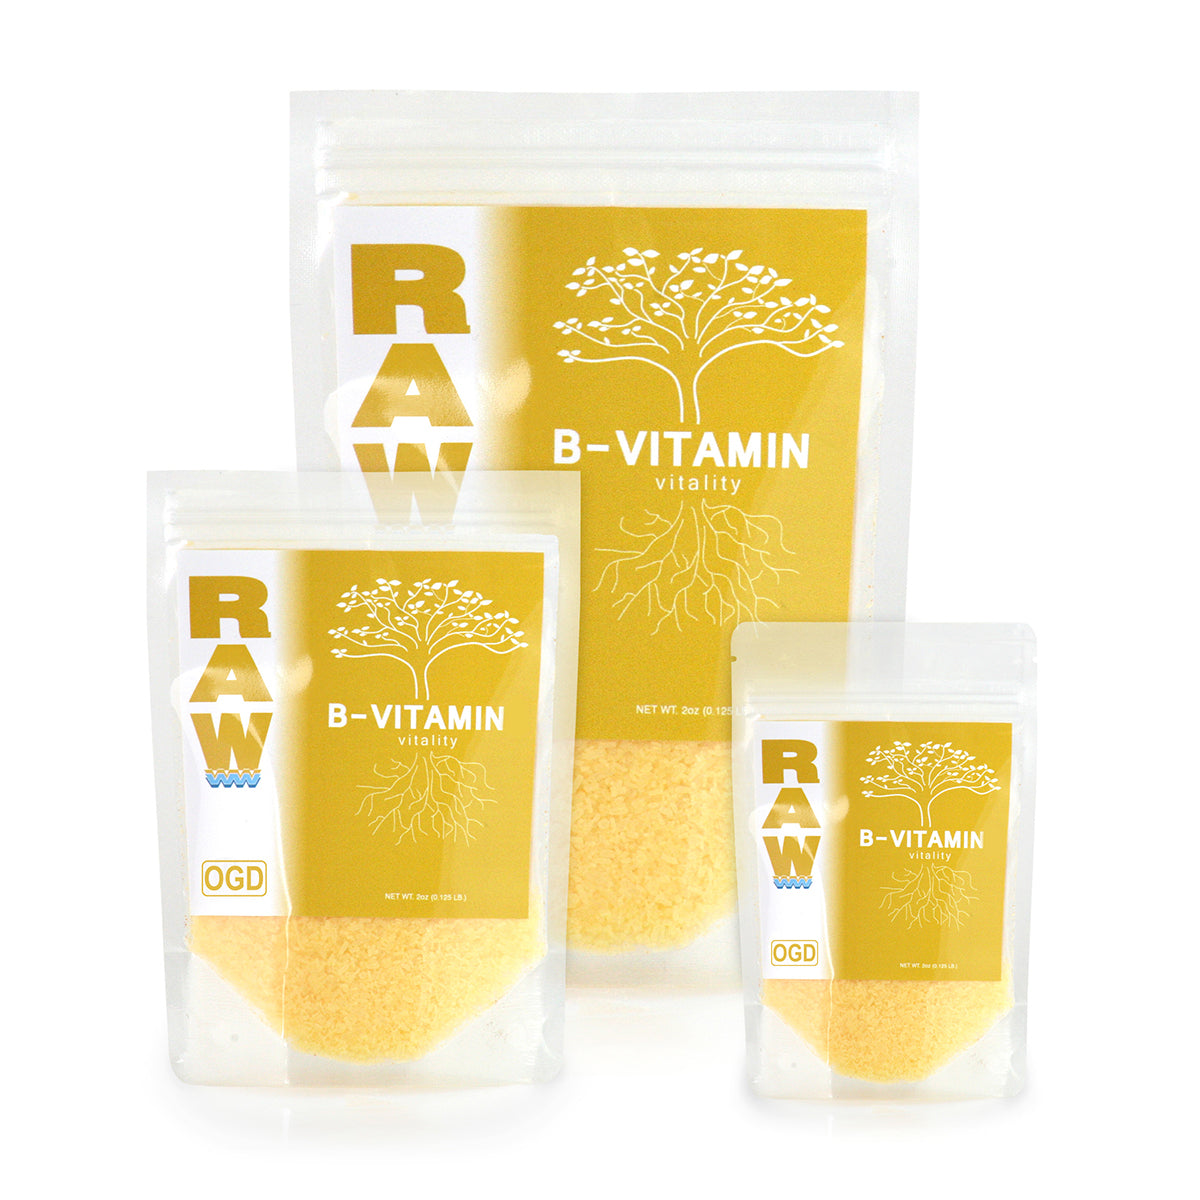 RAW B-Vitamin 2 lb (3/cs)